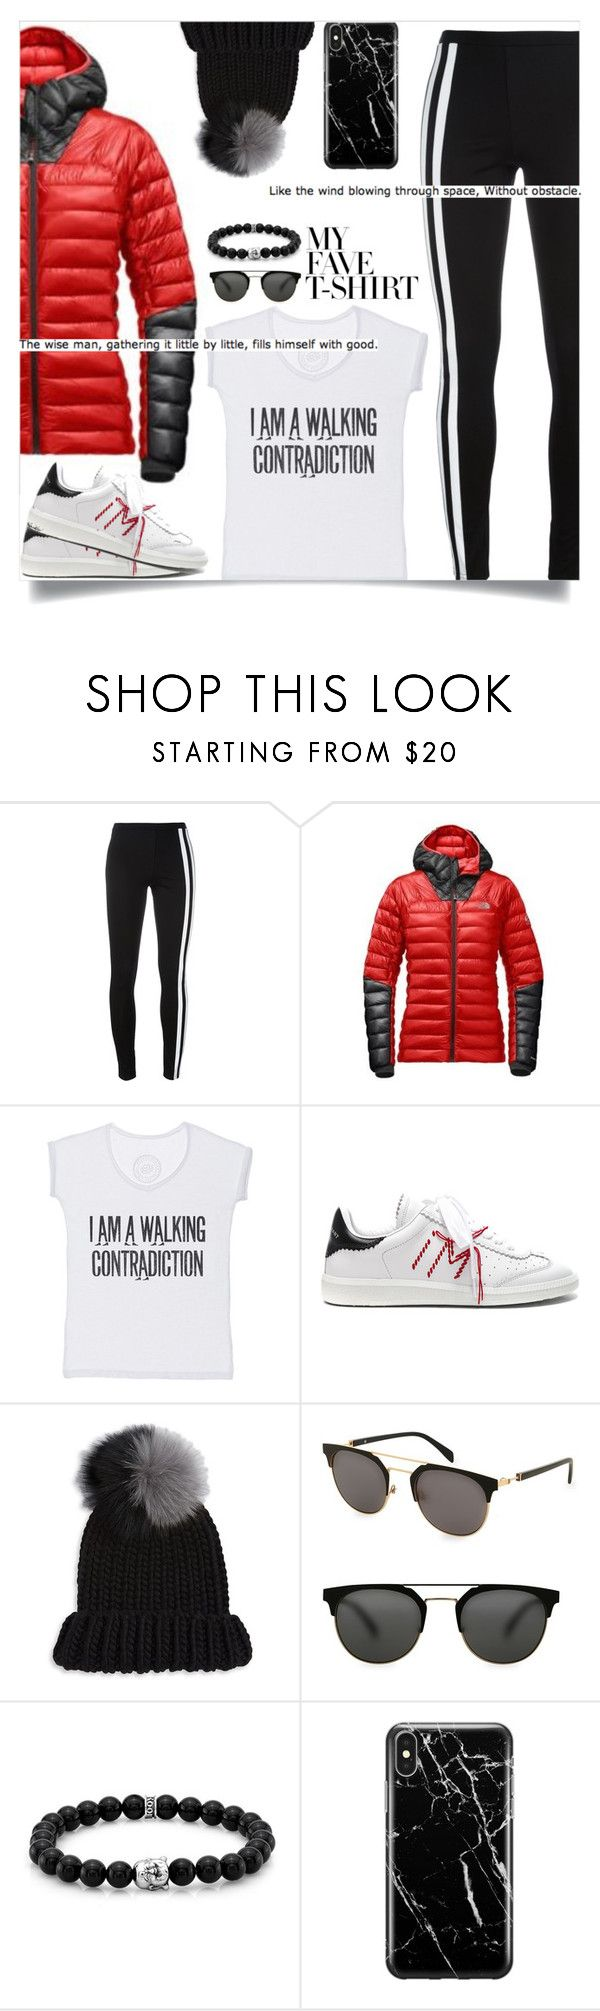 """""""Dress Up a T-Shirt"""" by tina-abbara ❤ liked on Polyvore featuring Y-3, The North Face, The Vintees T-Shirts Co., Isabel Marant, Eugenia Kim, Balmain, Room101 and Recover"""